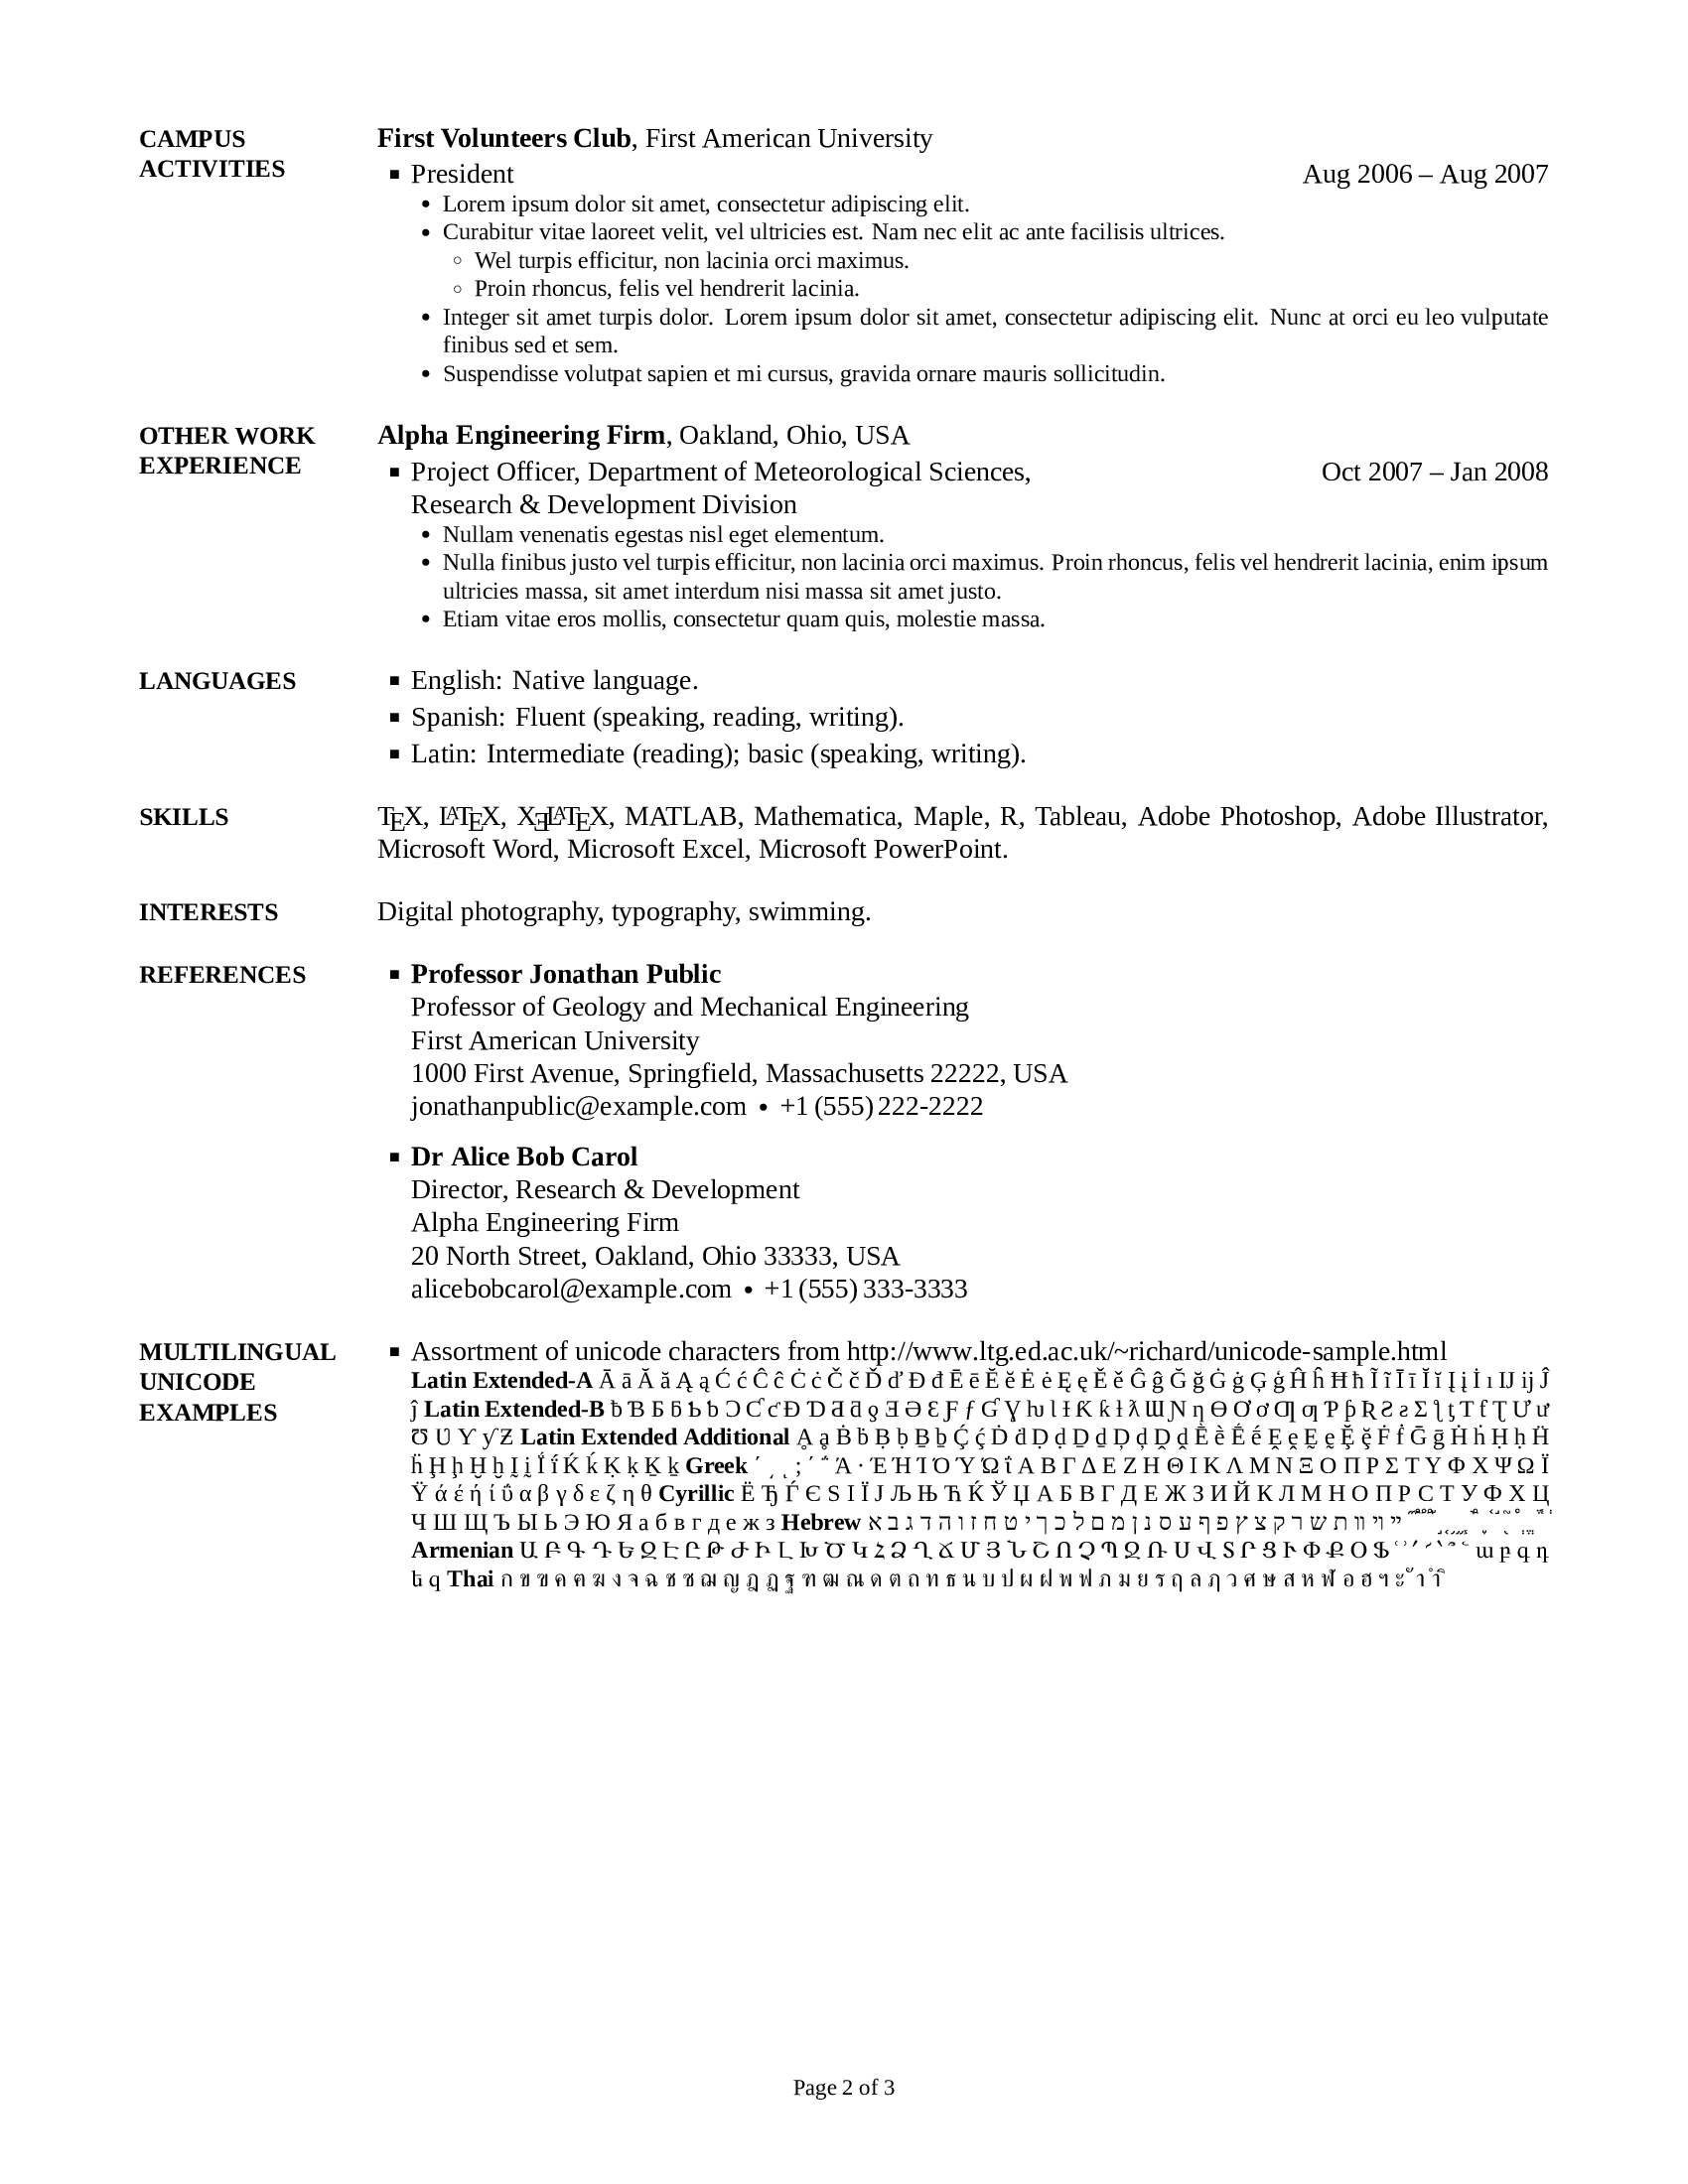 GitHub - zachscrivena/simple-resume-cv: Template for a simple resume ...